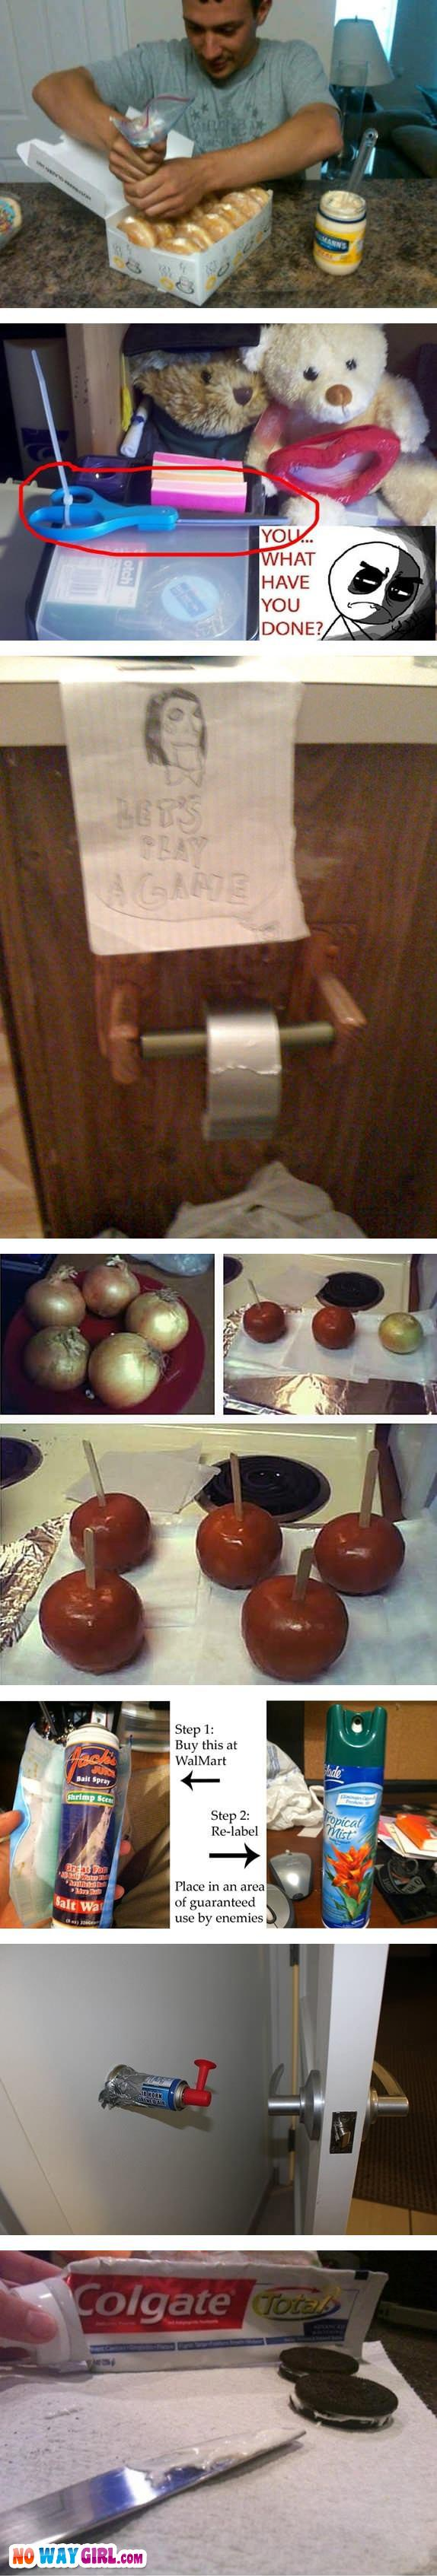 funny pranks onions apples